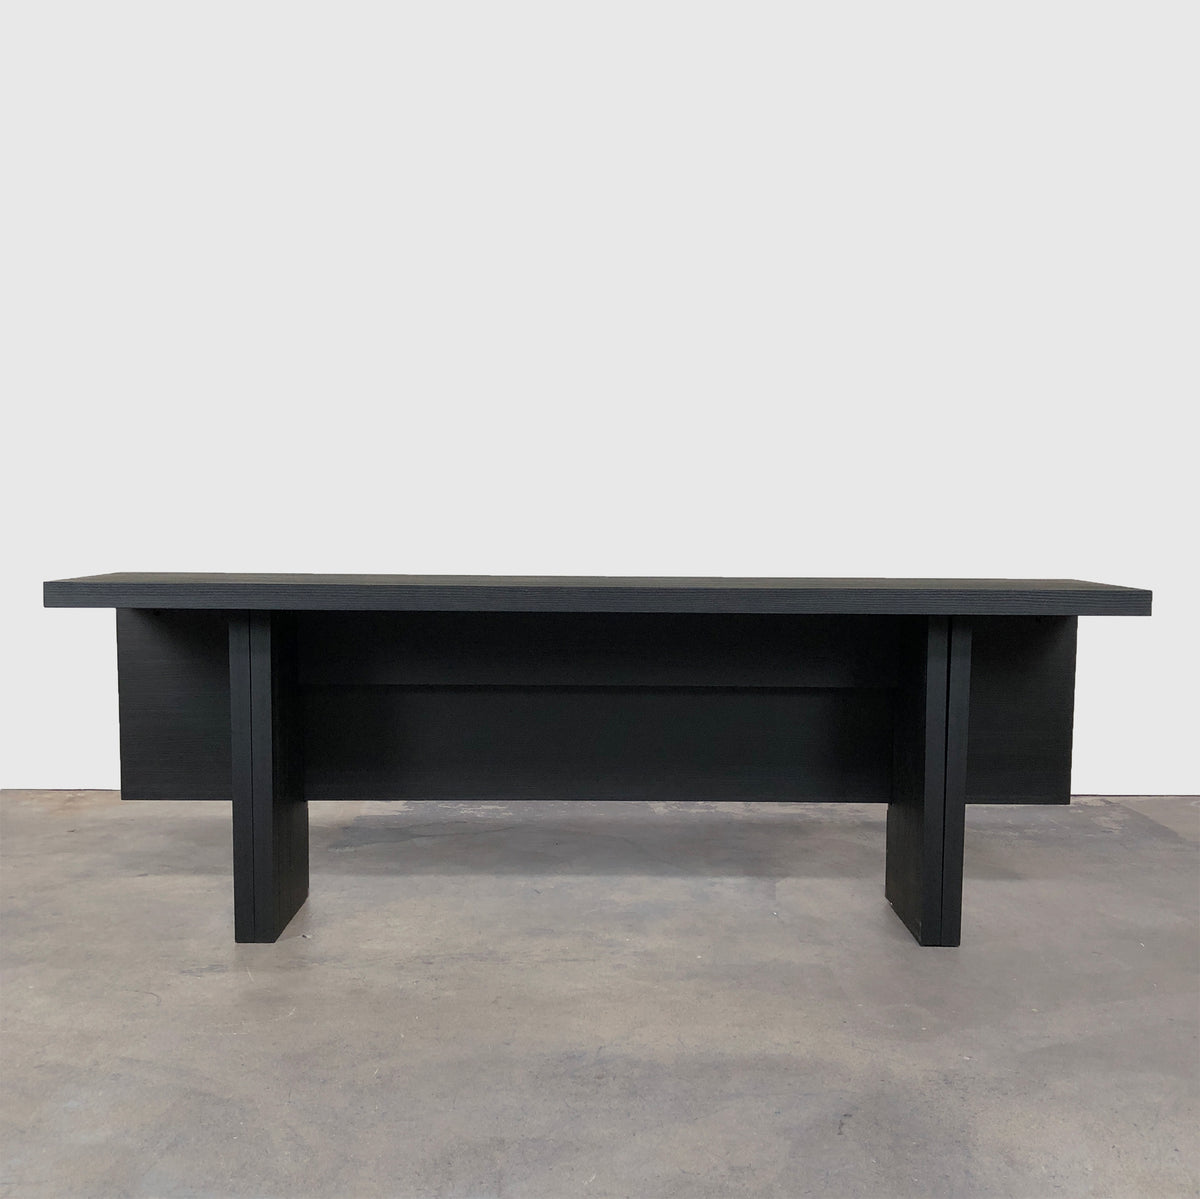 Maxalto Black Oak 'Sibilla' Dining Table / Console by Antonio Citterio